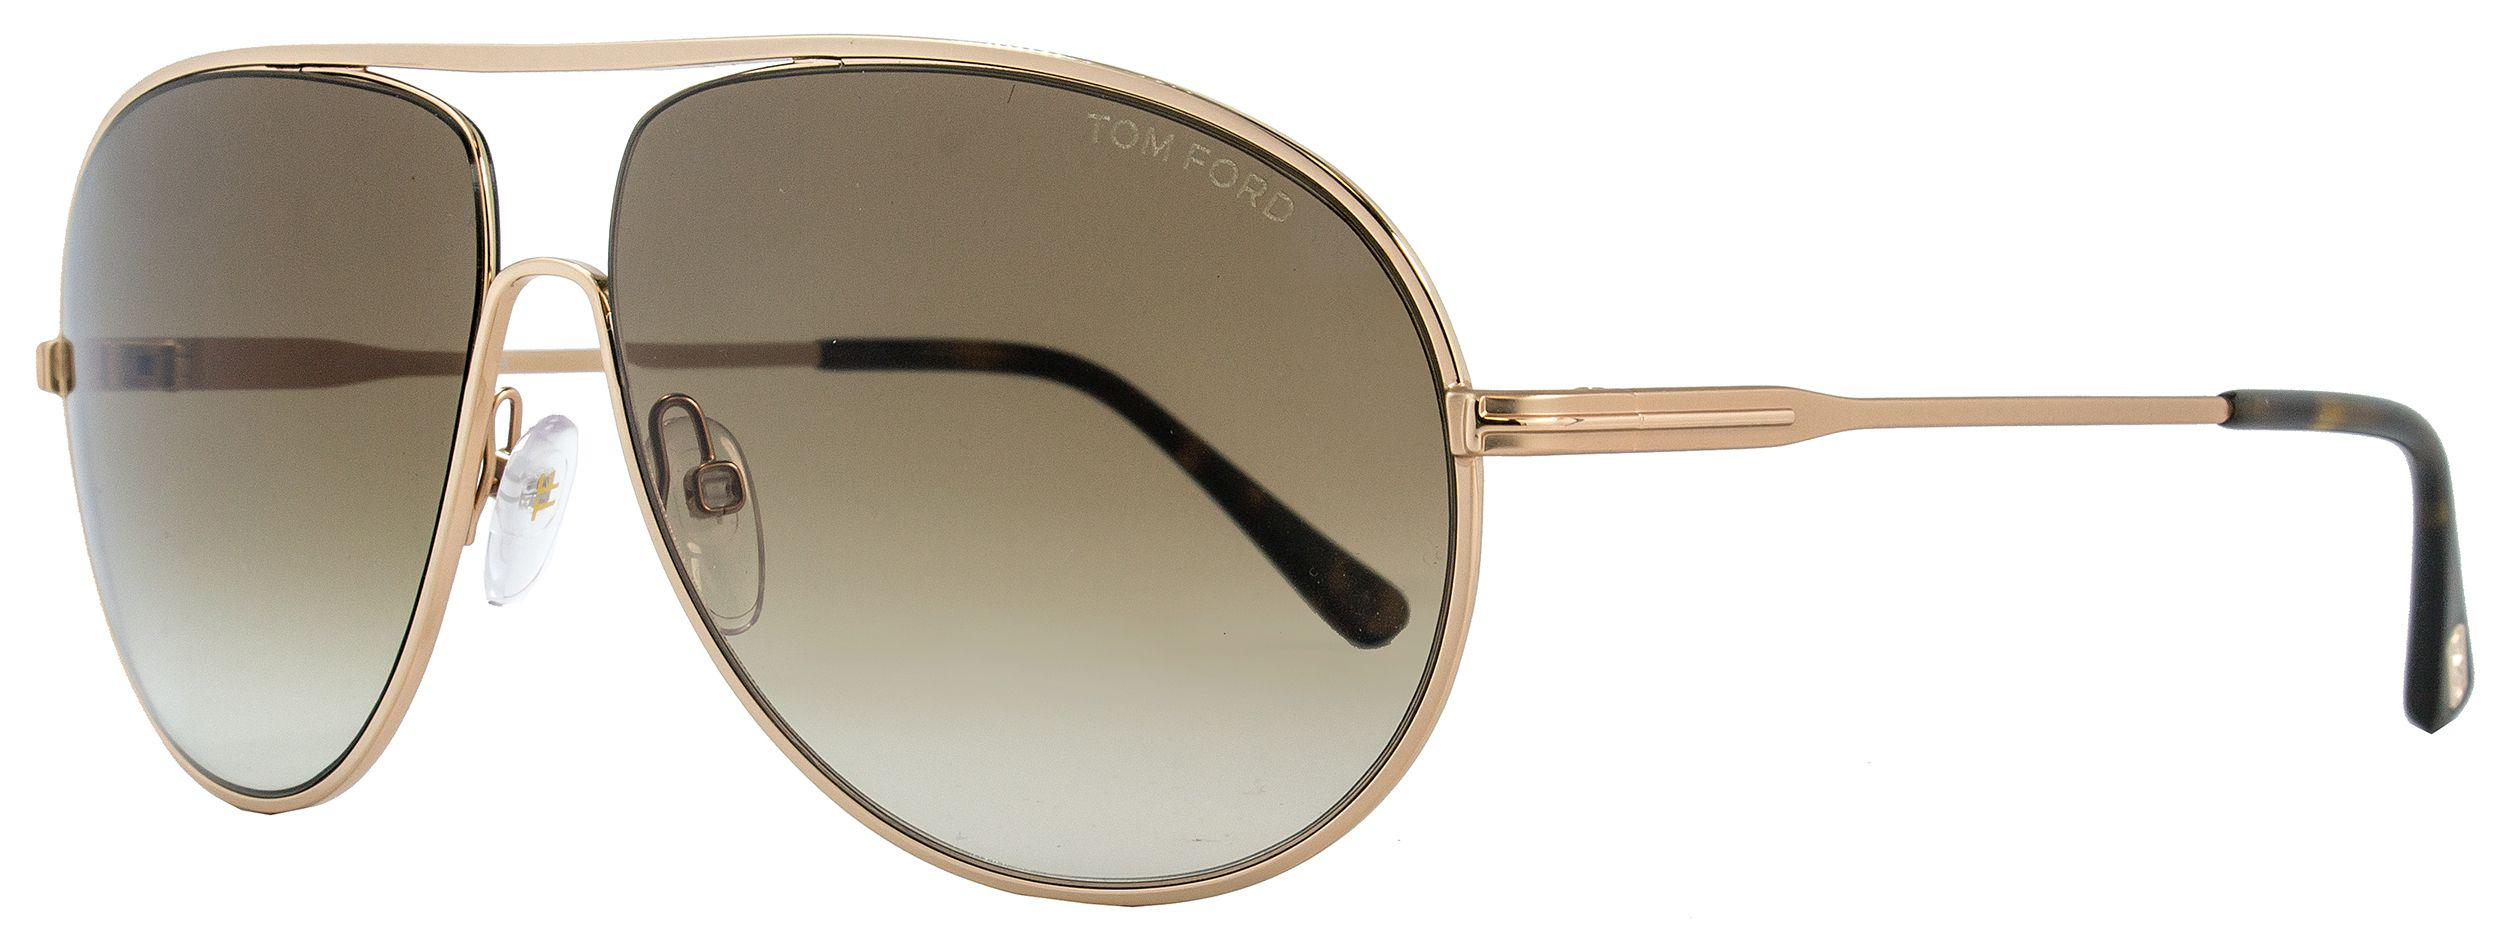 ed595673a9 Tom Ford Ft0450 28f Cliff Shiny Gold Aviator Sunglasses ✓ Ford is ...